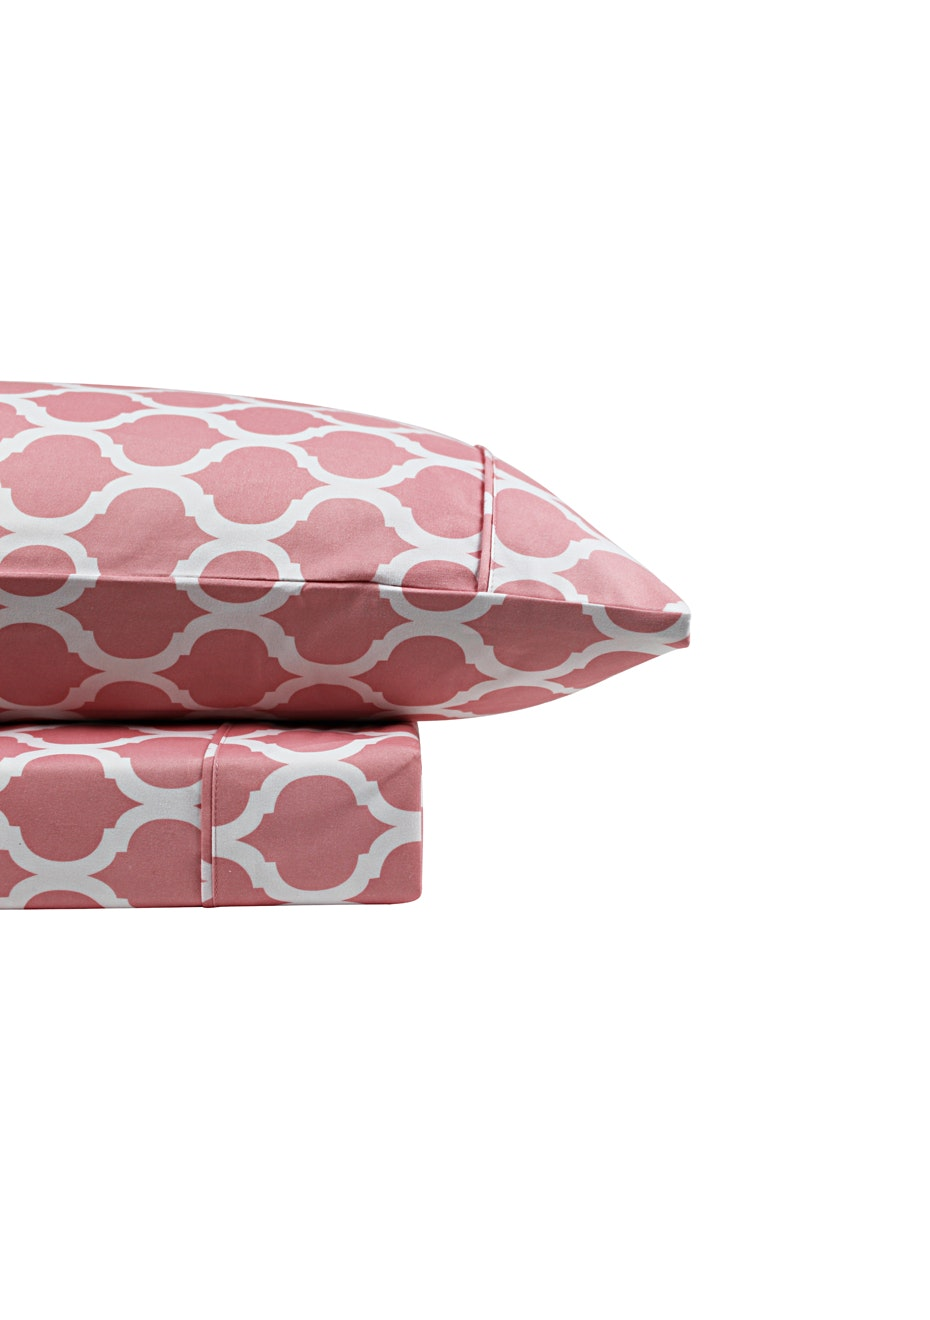 Thermal Flannel Sheet Sets - Morocco Design - Blossom - Double Bed